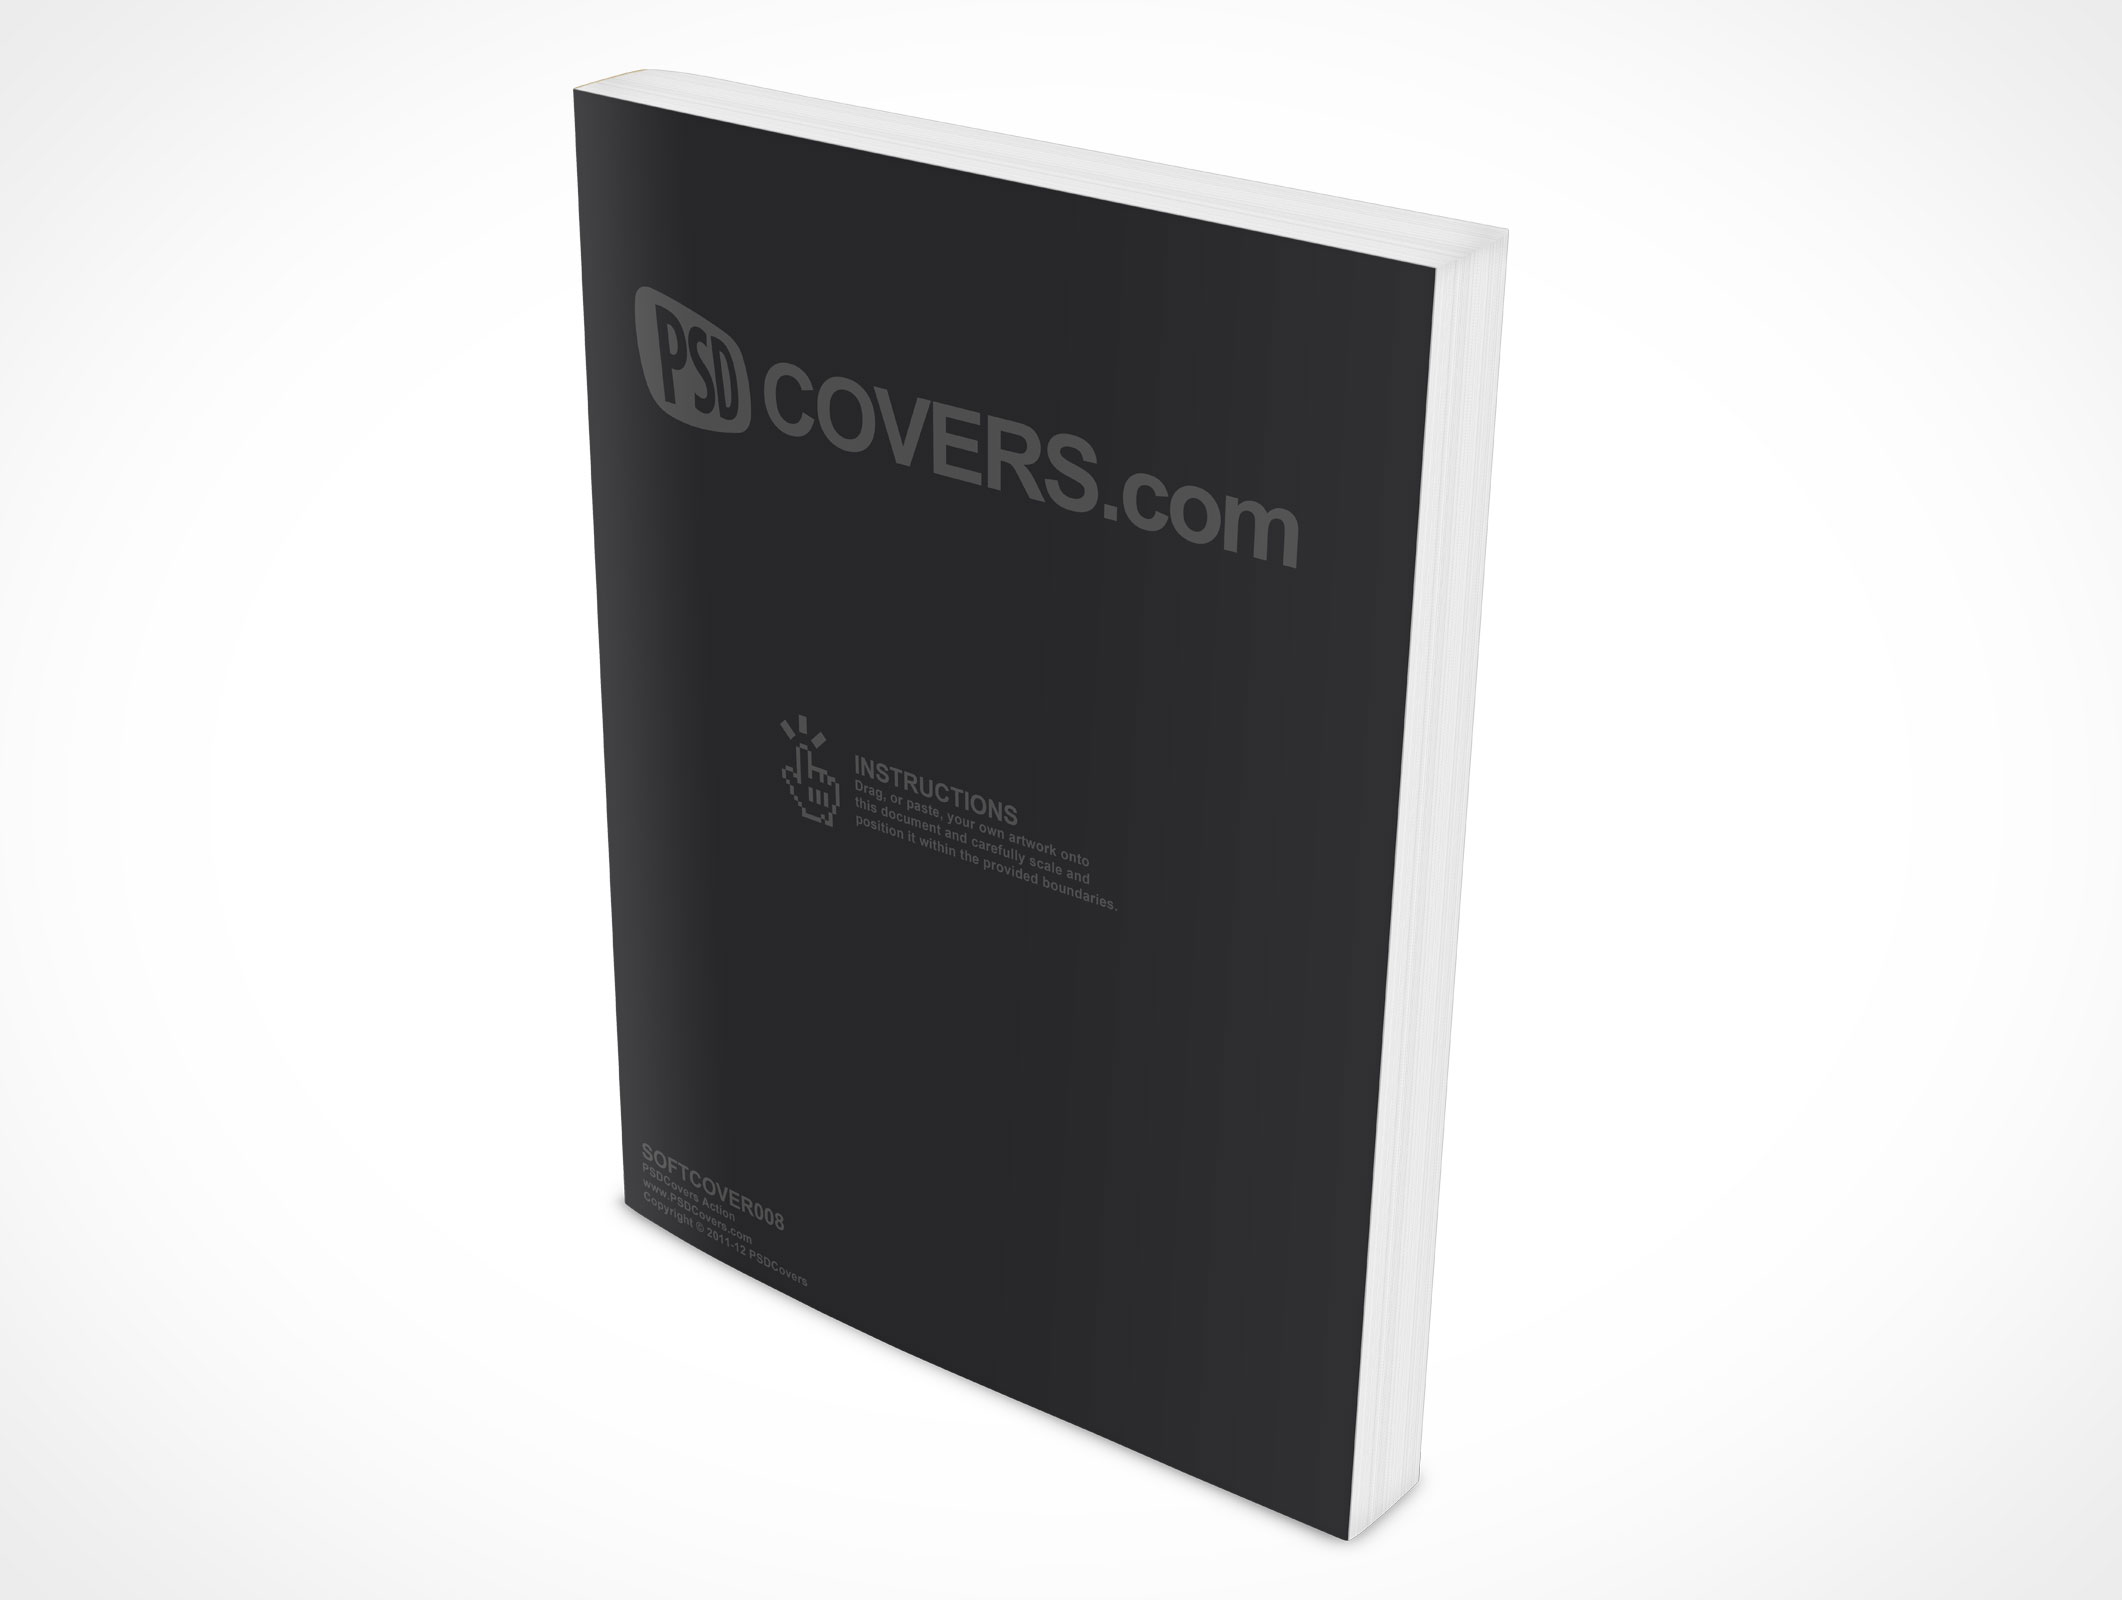 SOFTCOVER008